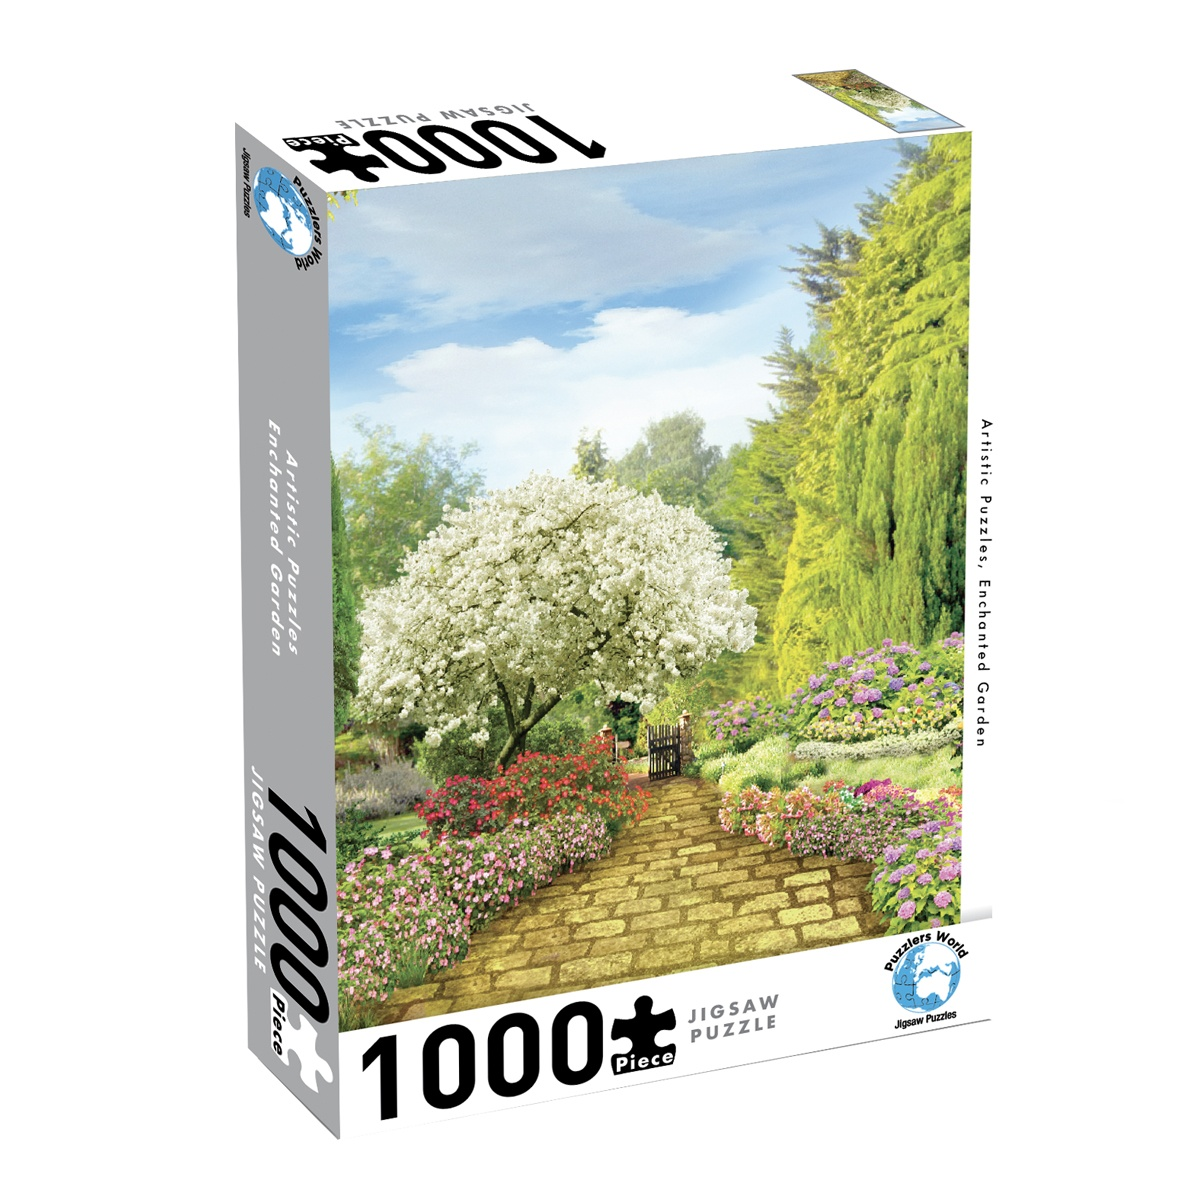 Puzzlers World ~ Artistic Jigsaw 1000pc Puzzles ~ Enchanted Garden